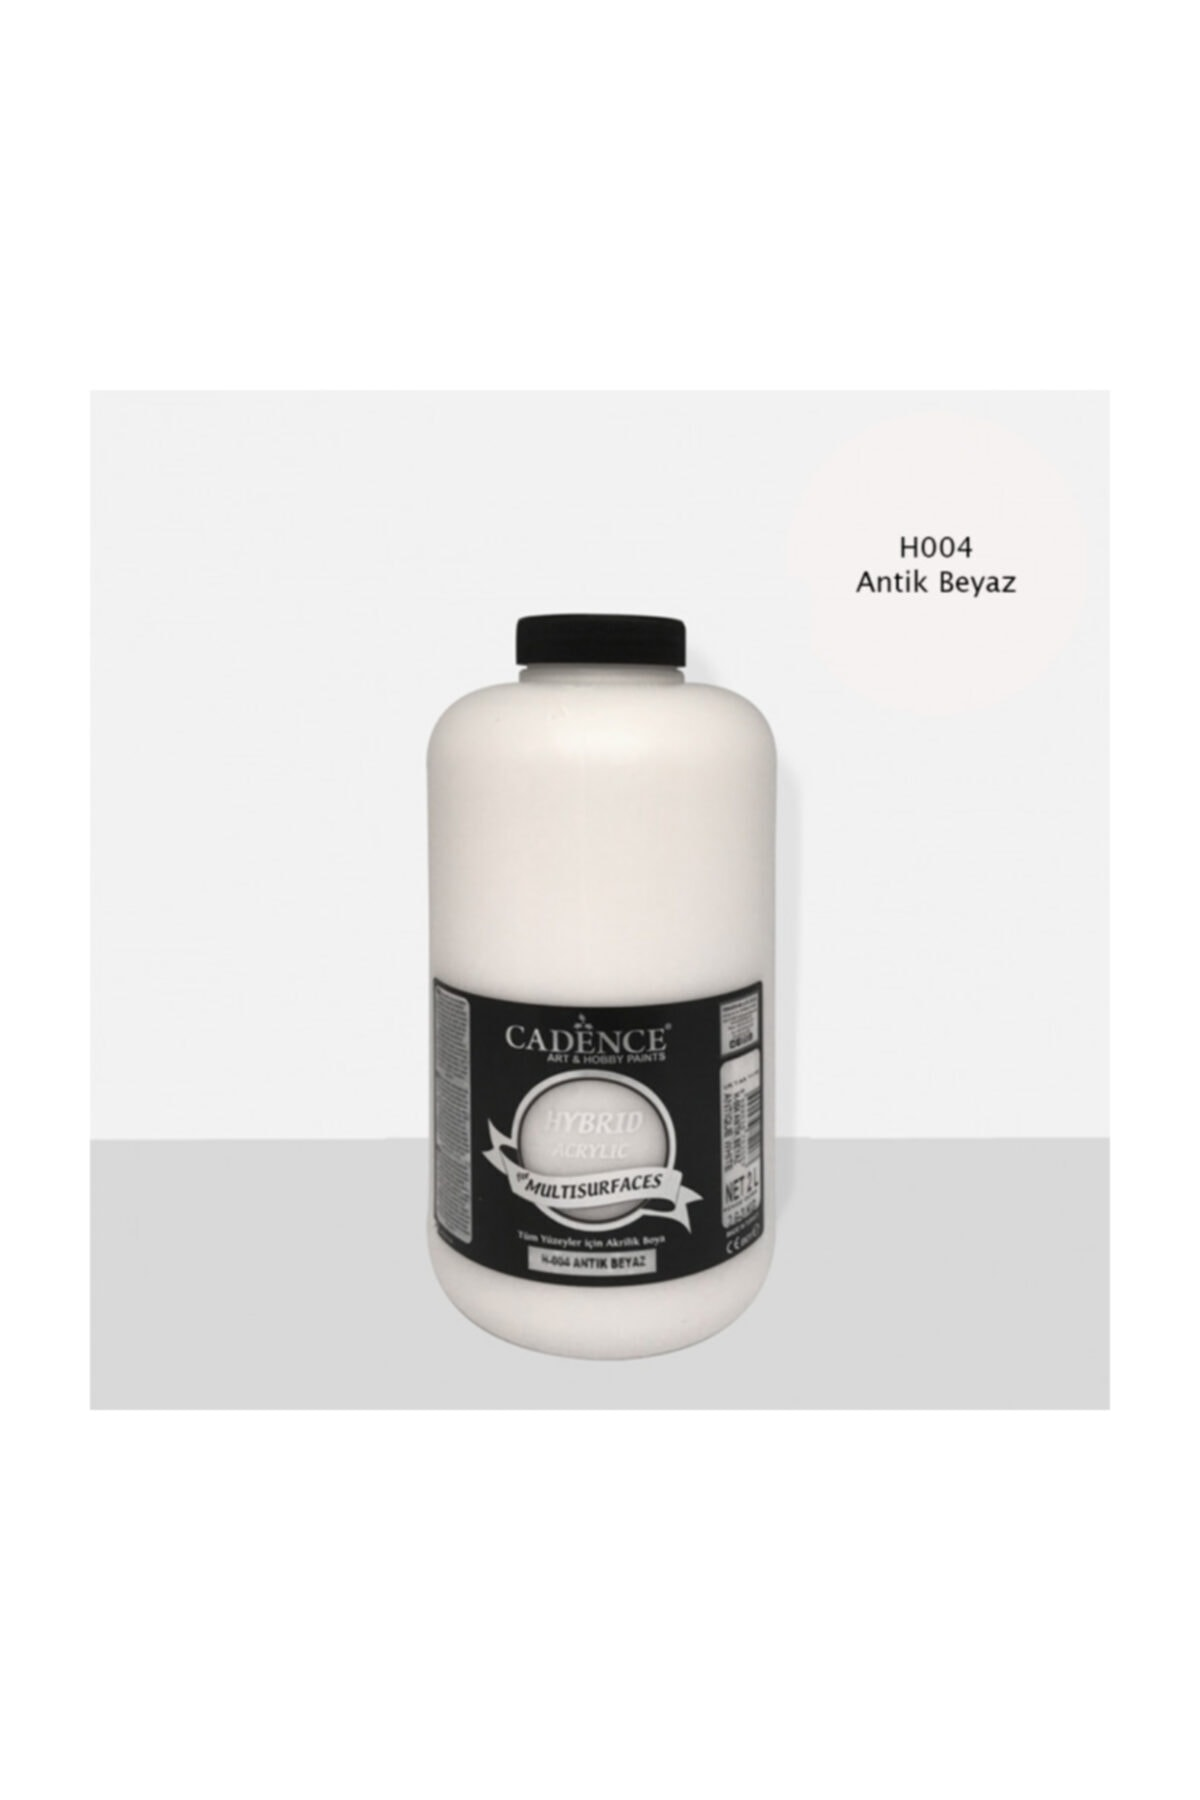 Cadence H004 Antik Beyaz - Multisurfaces 2000ml (2 Lt) 1